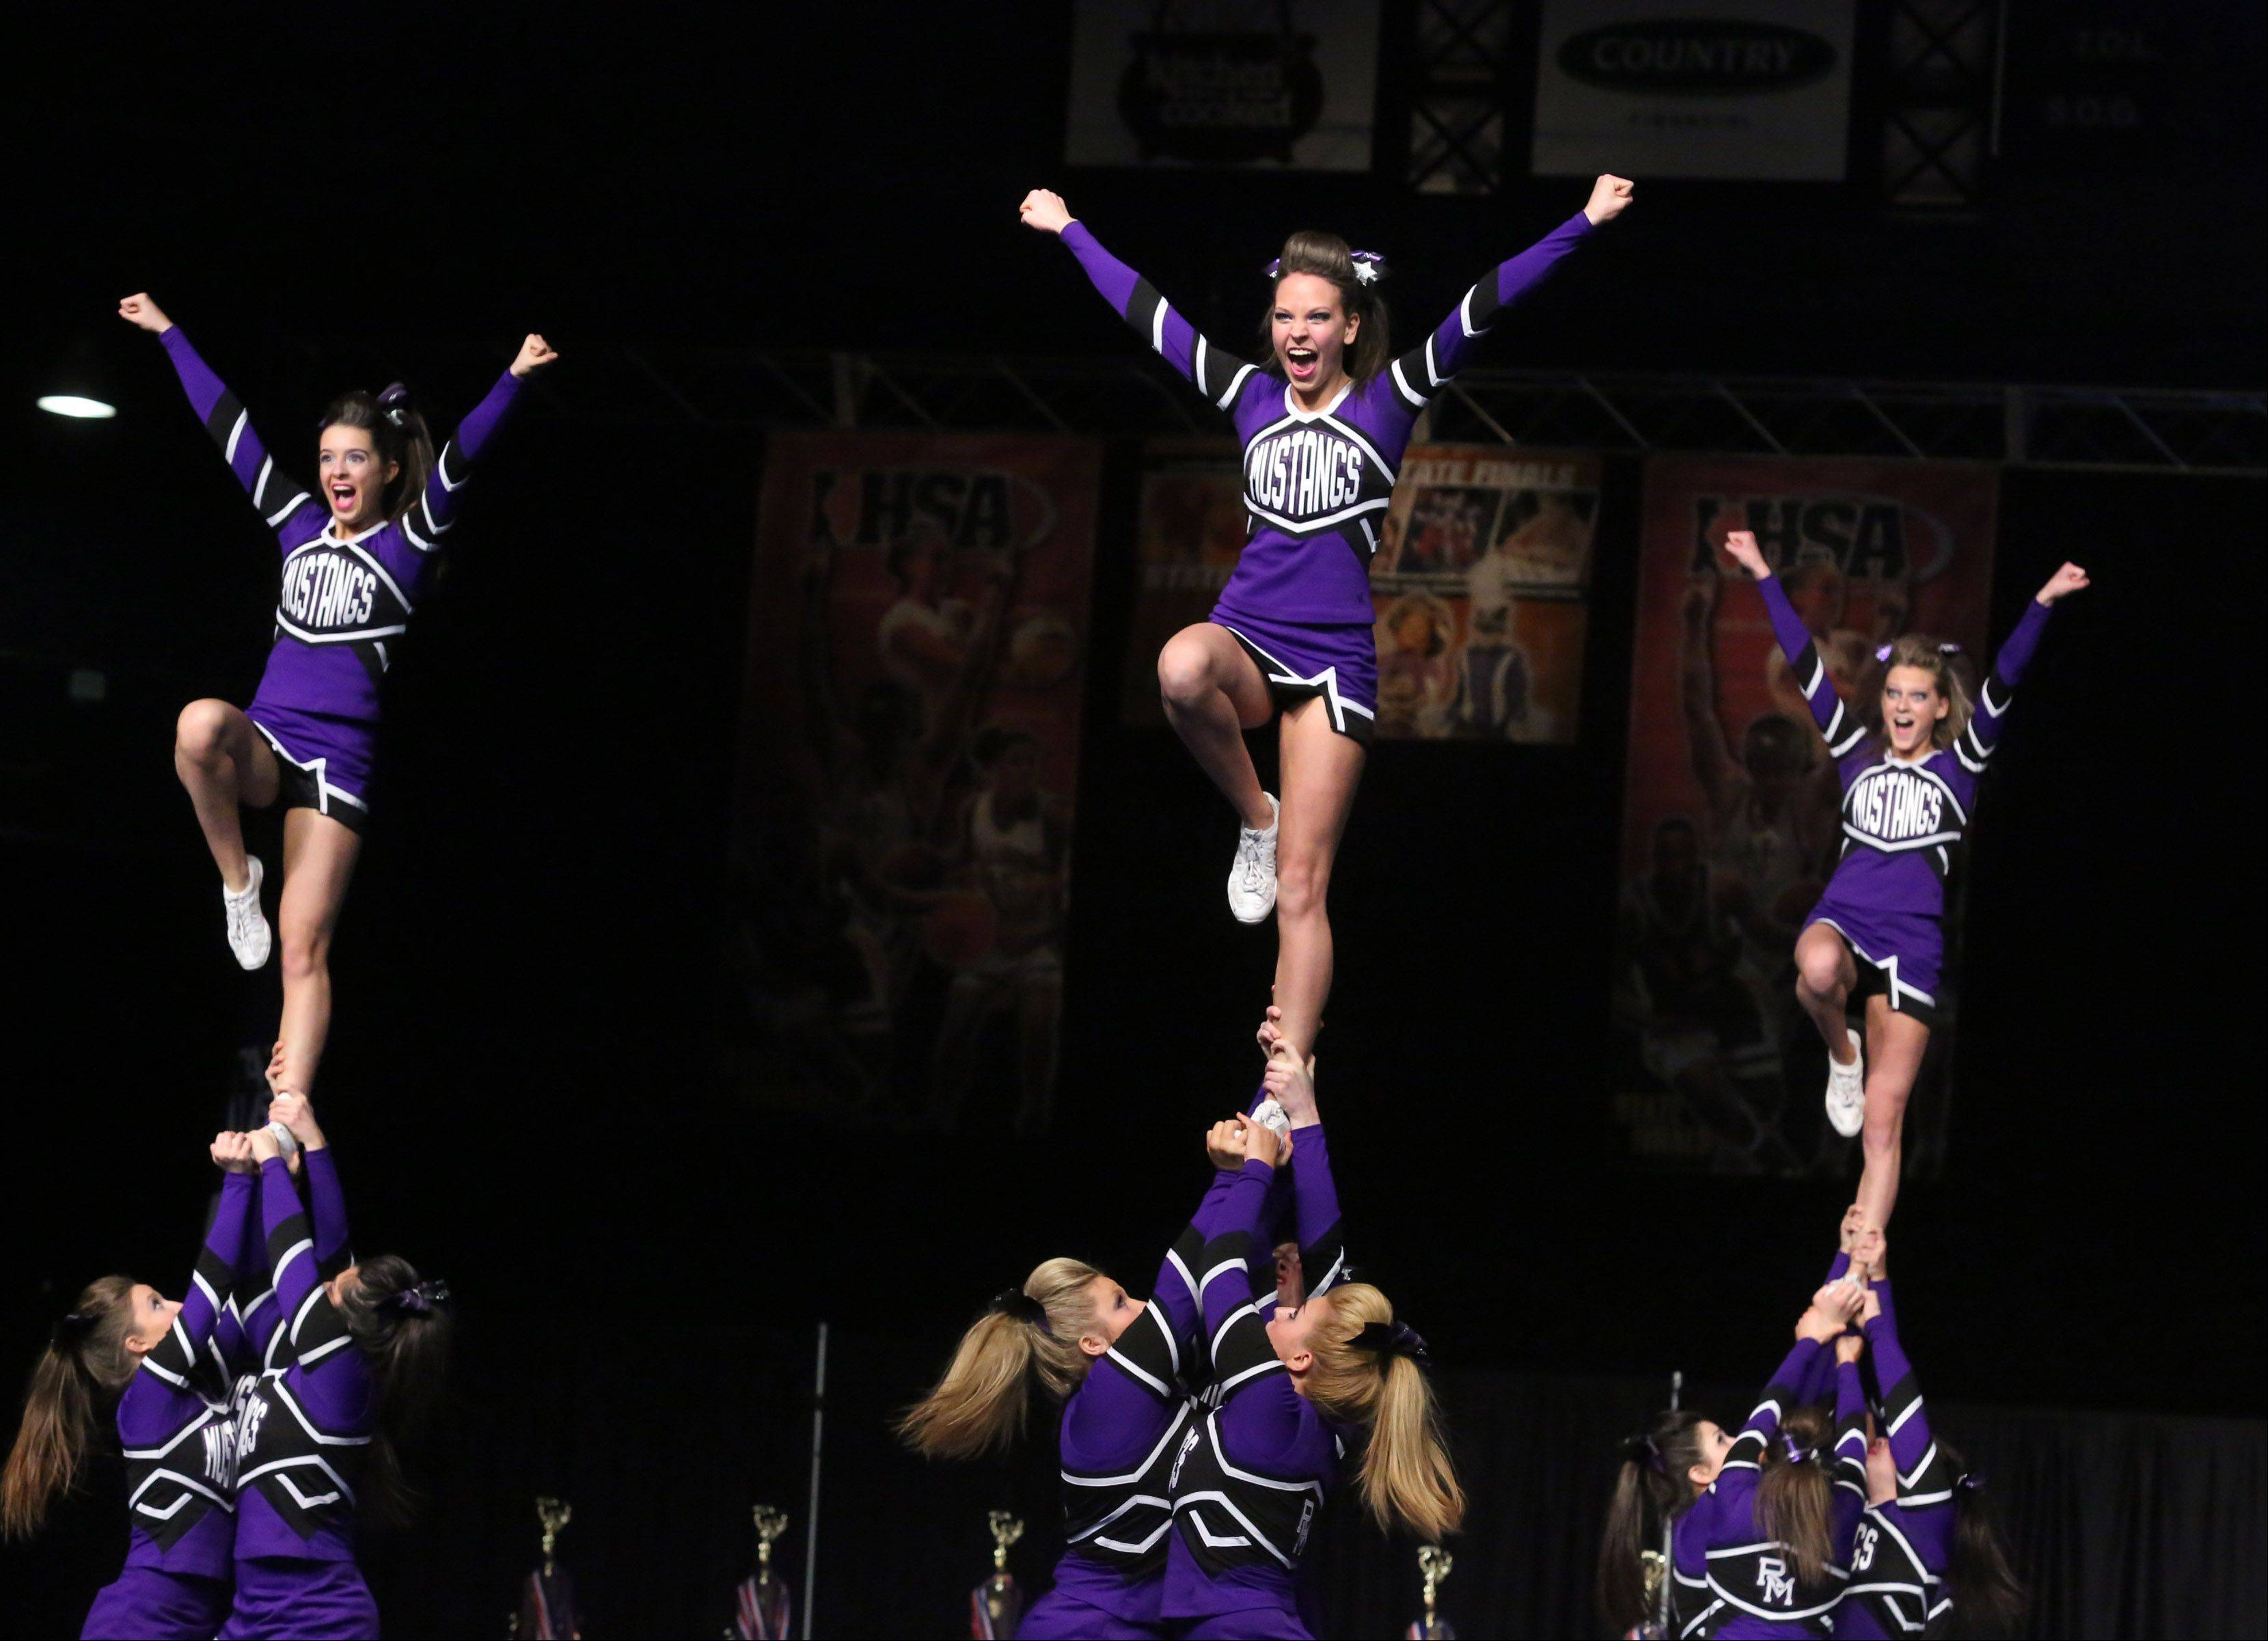 Rolling Meadows High School's cheer team performs in the large team category.